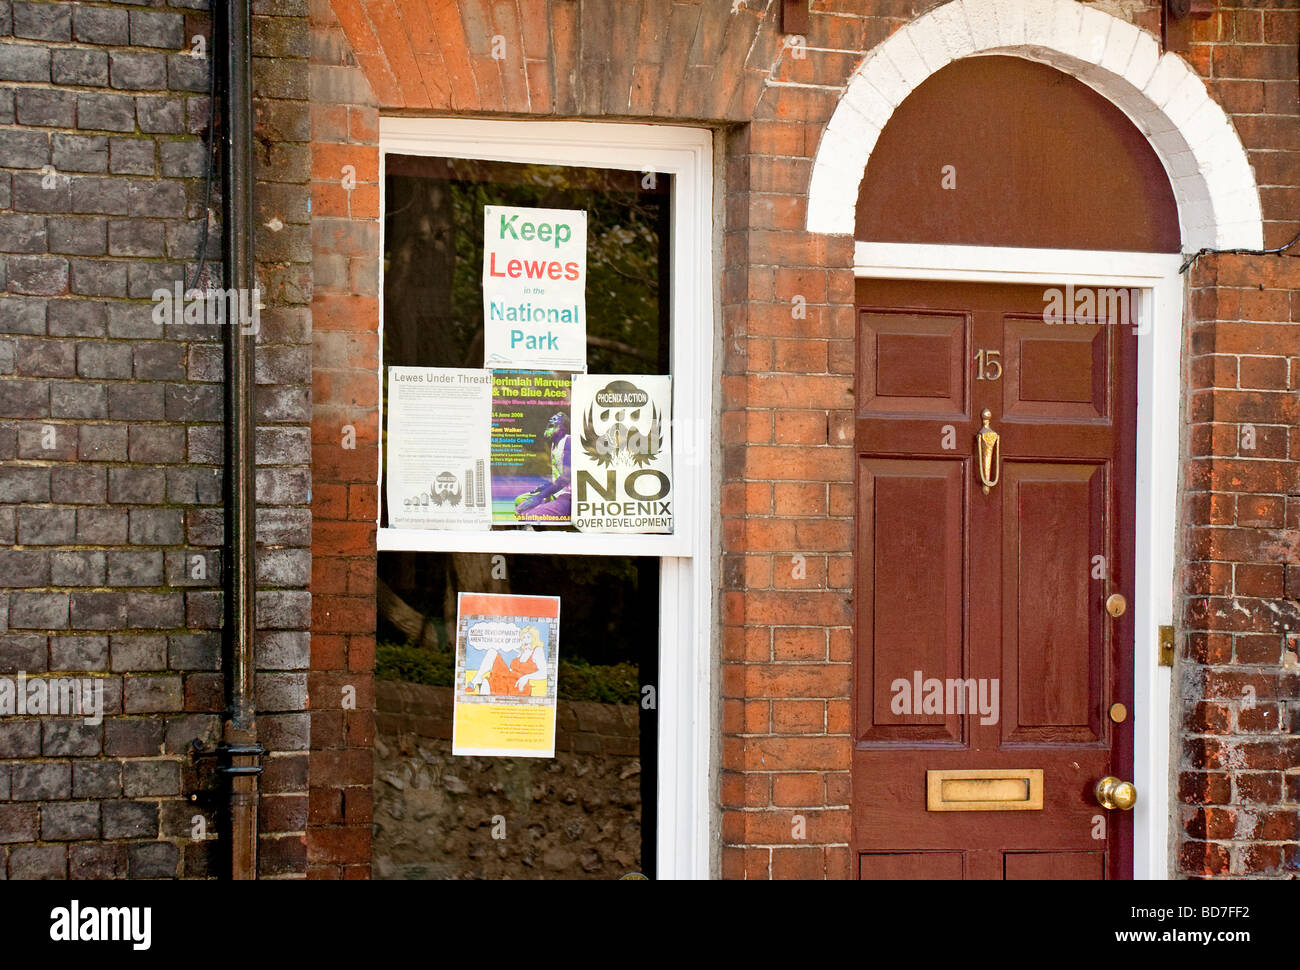 Posters in a window for environmental campaigns and town centre development - Stock Image